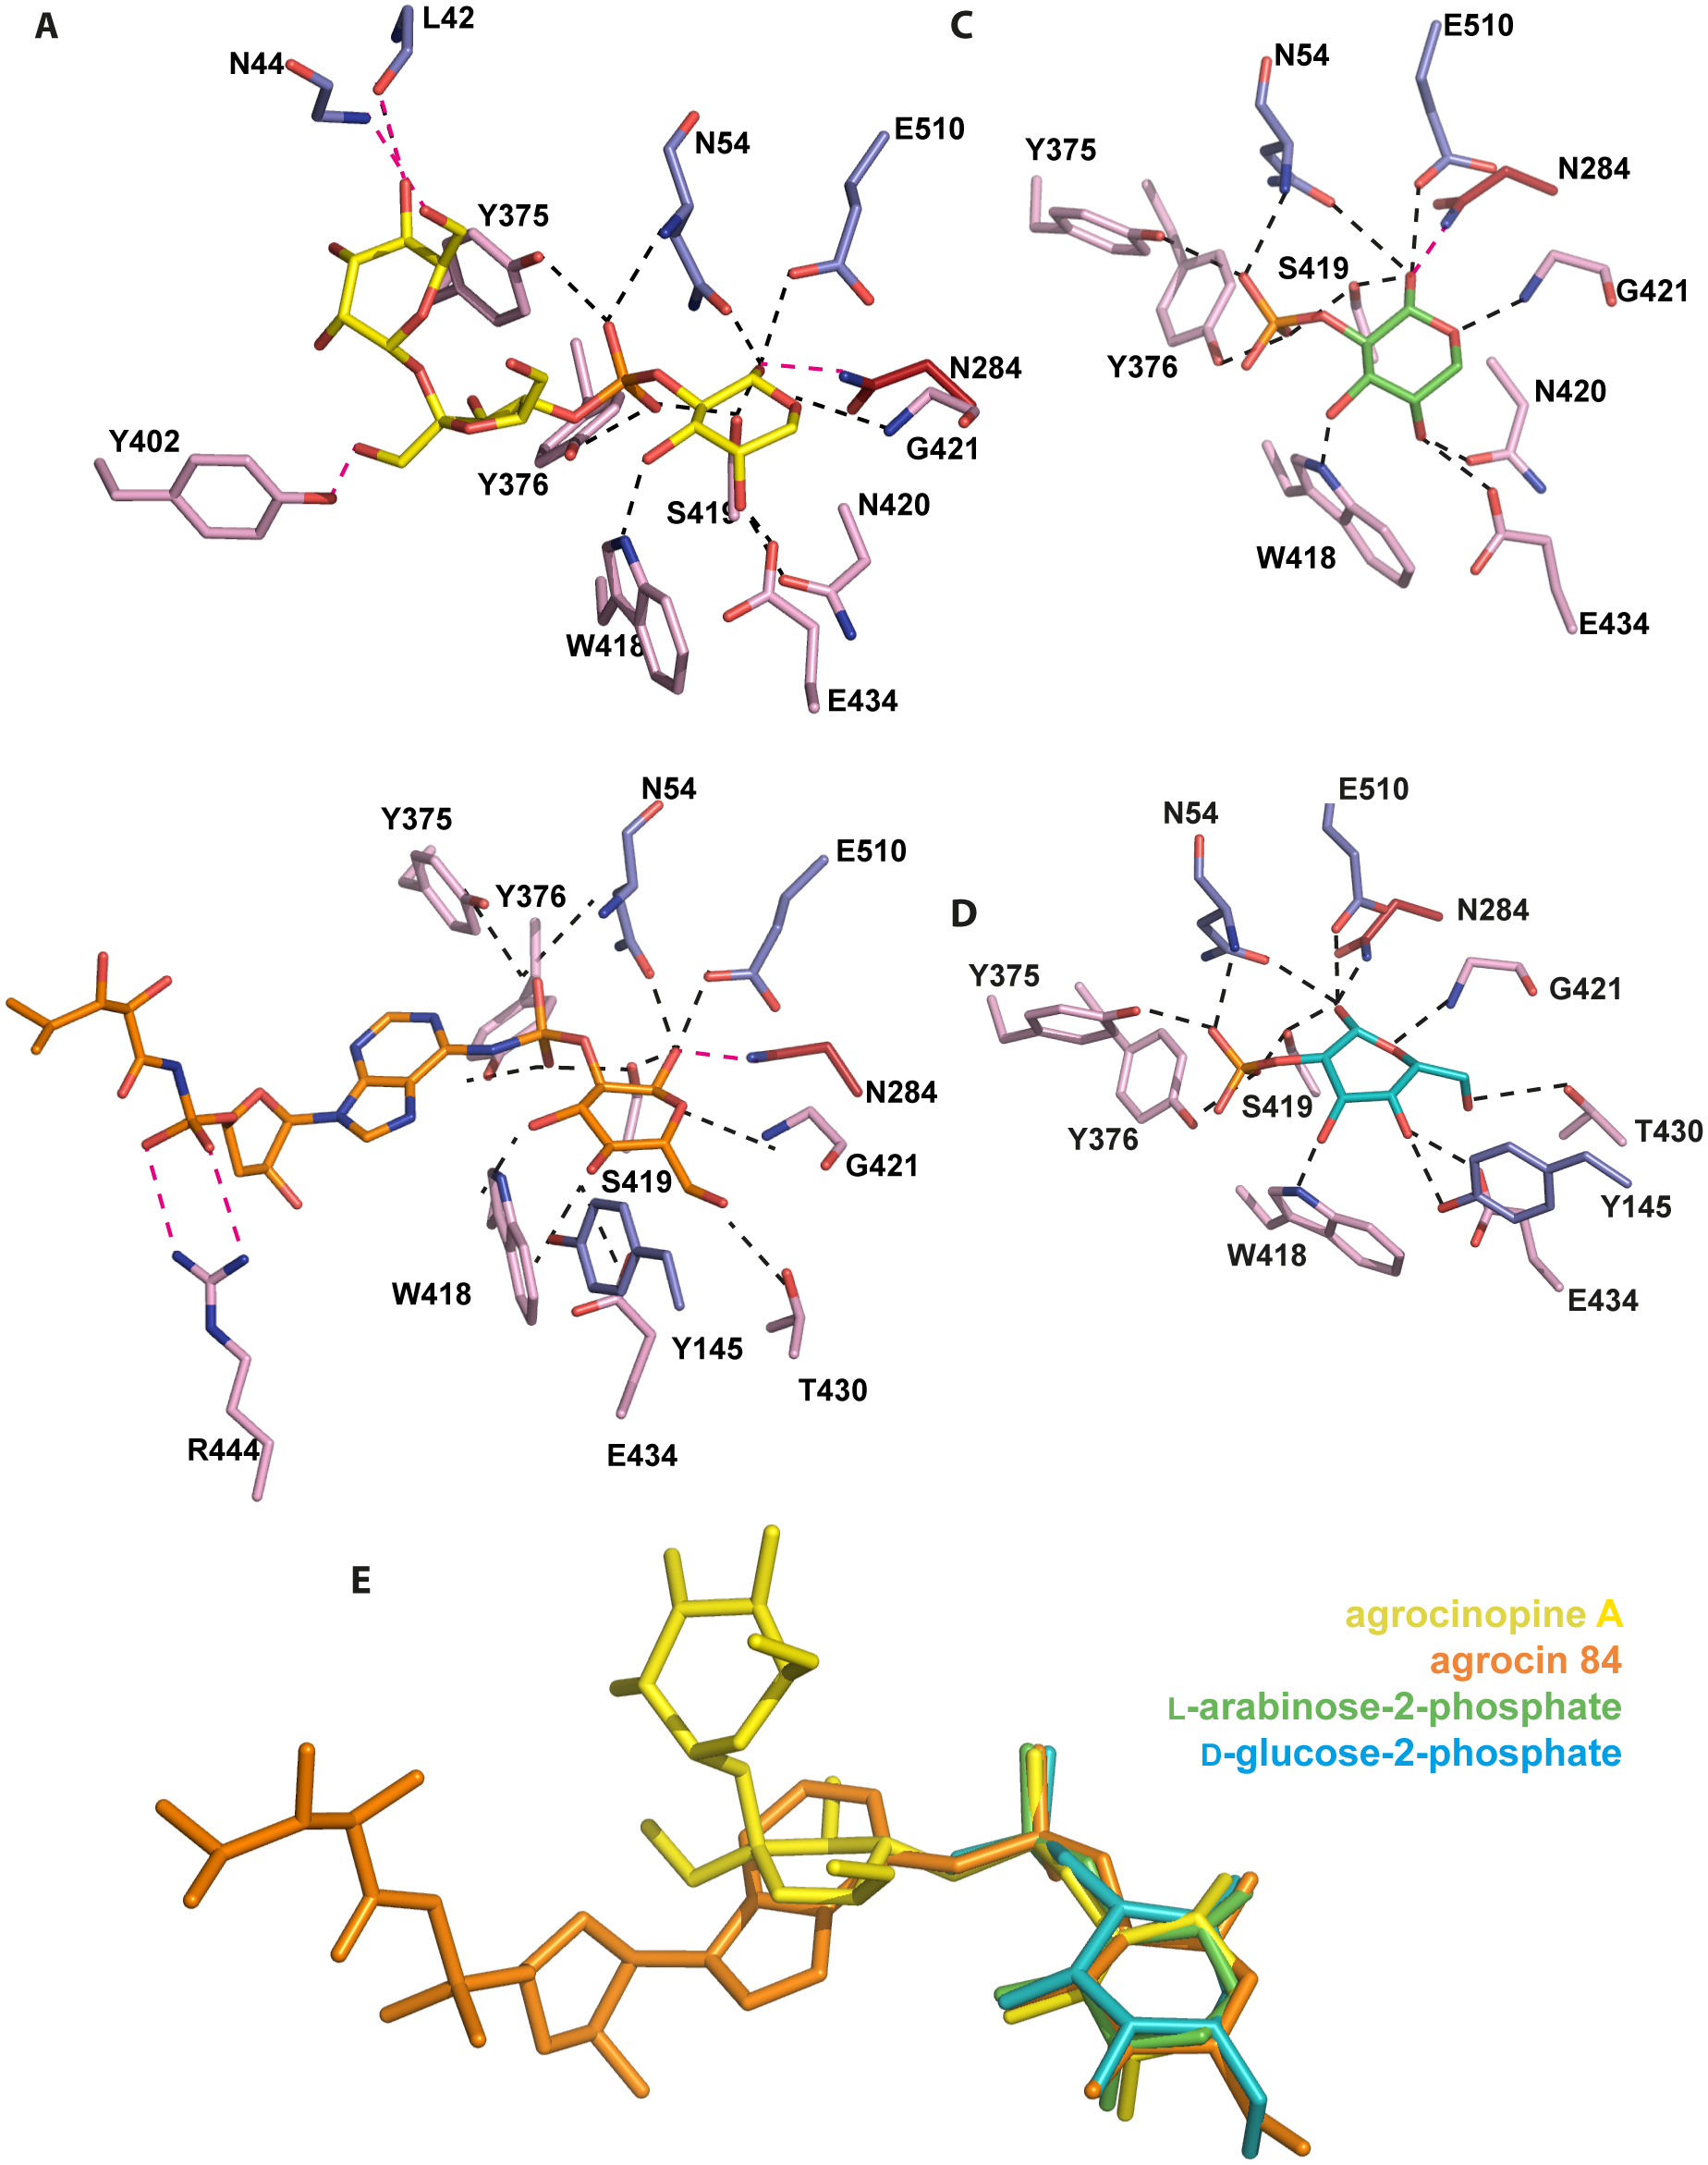 Ligand-binding site of AccA.